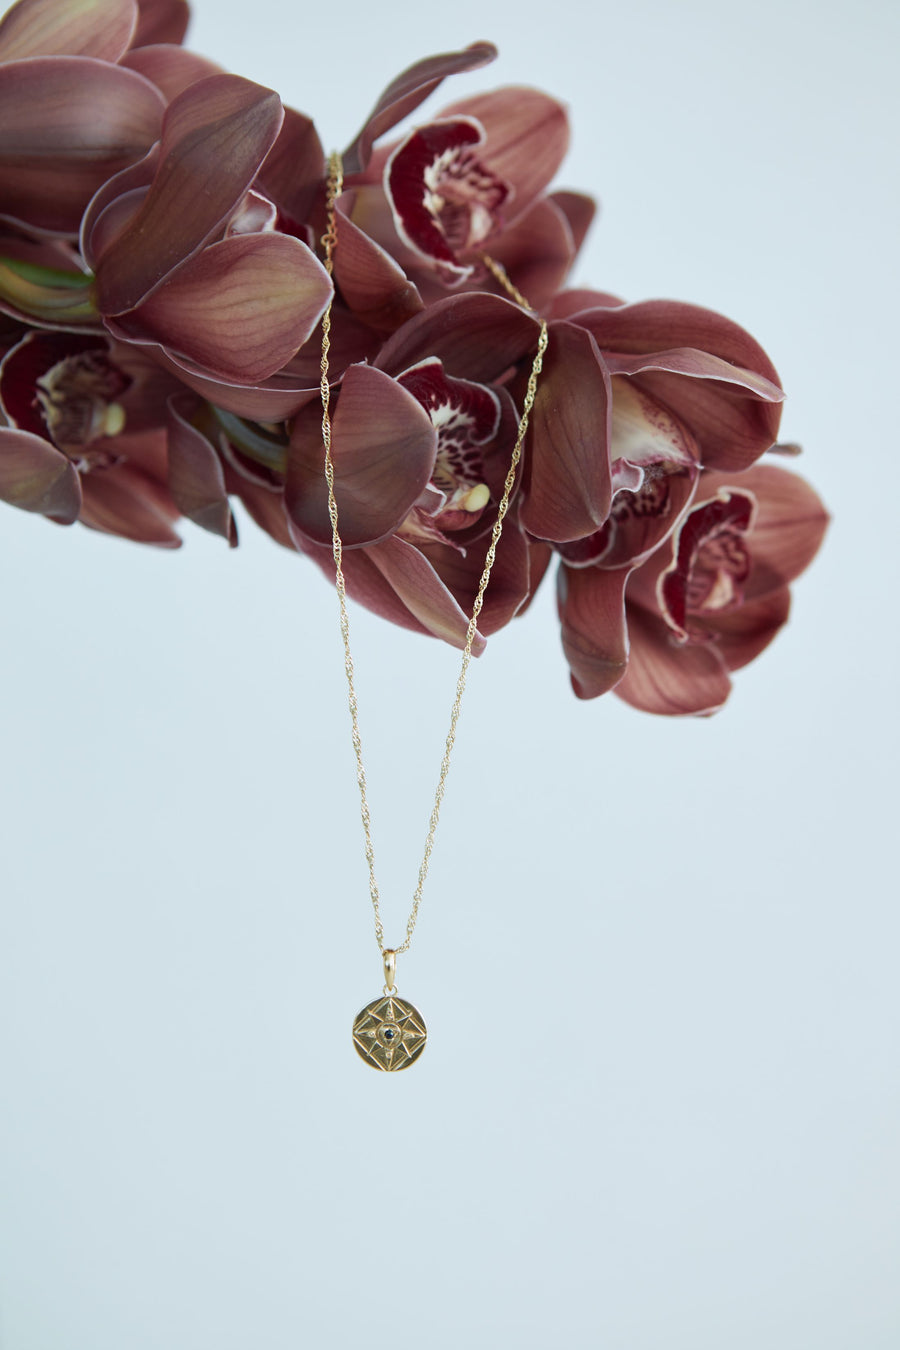 Alchemist mini pendant necklace // Gold Vermeil